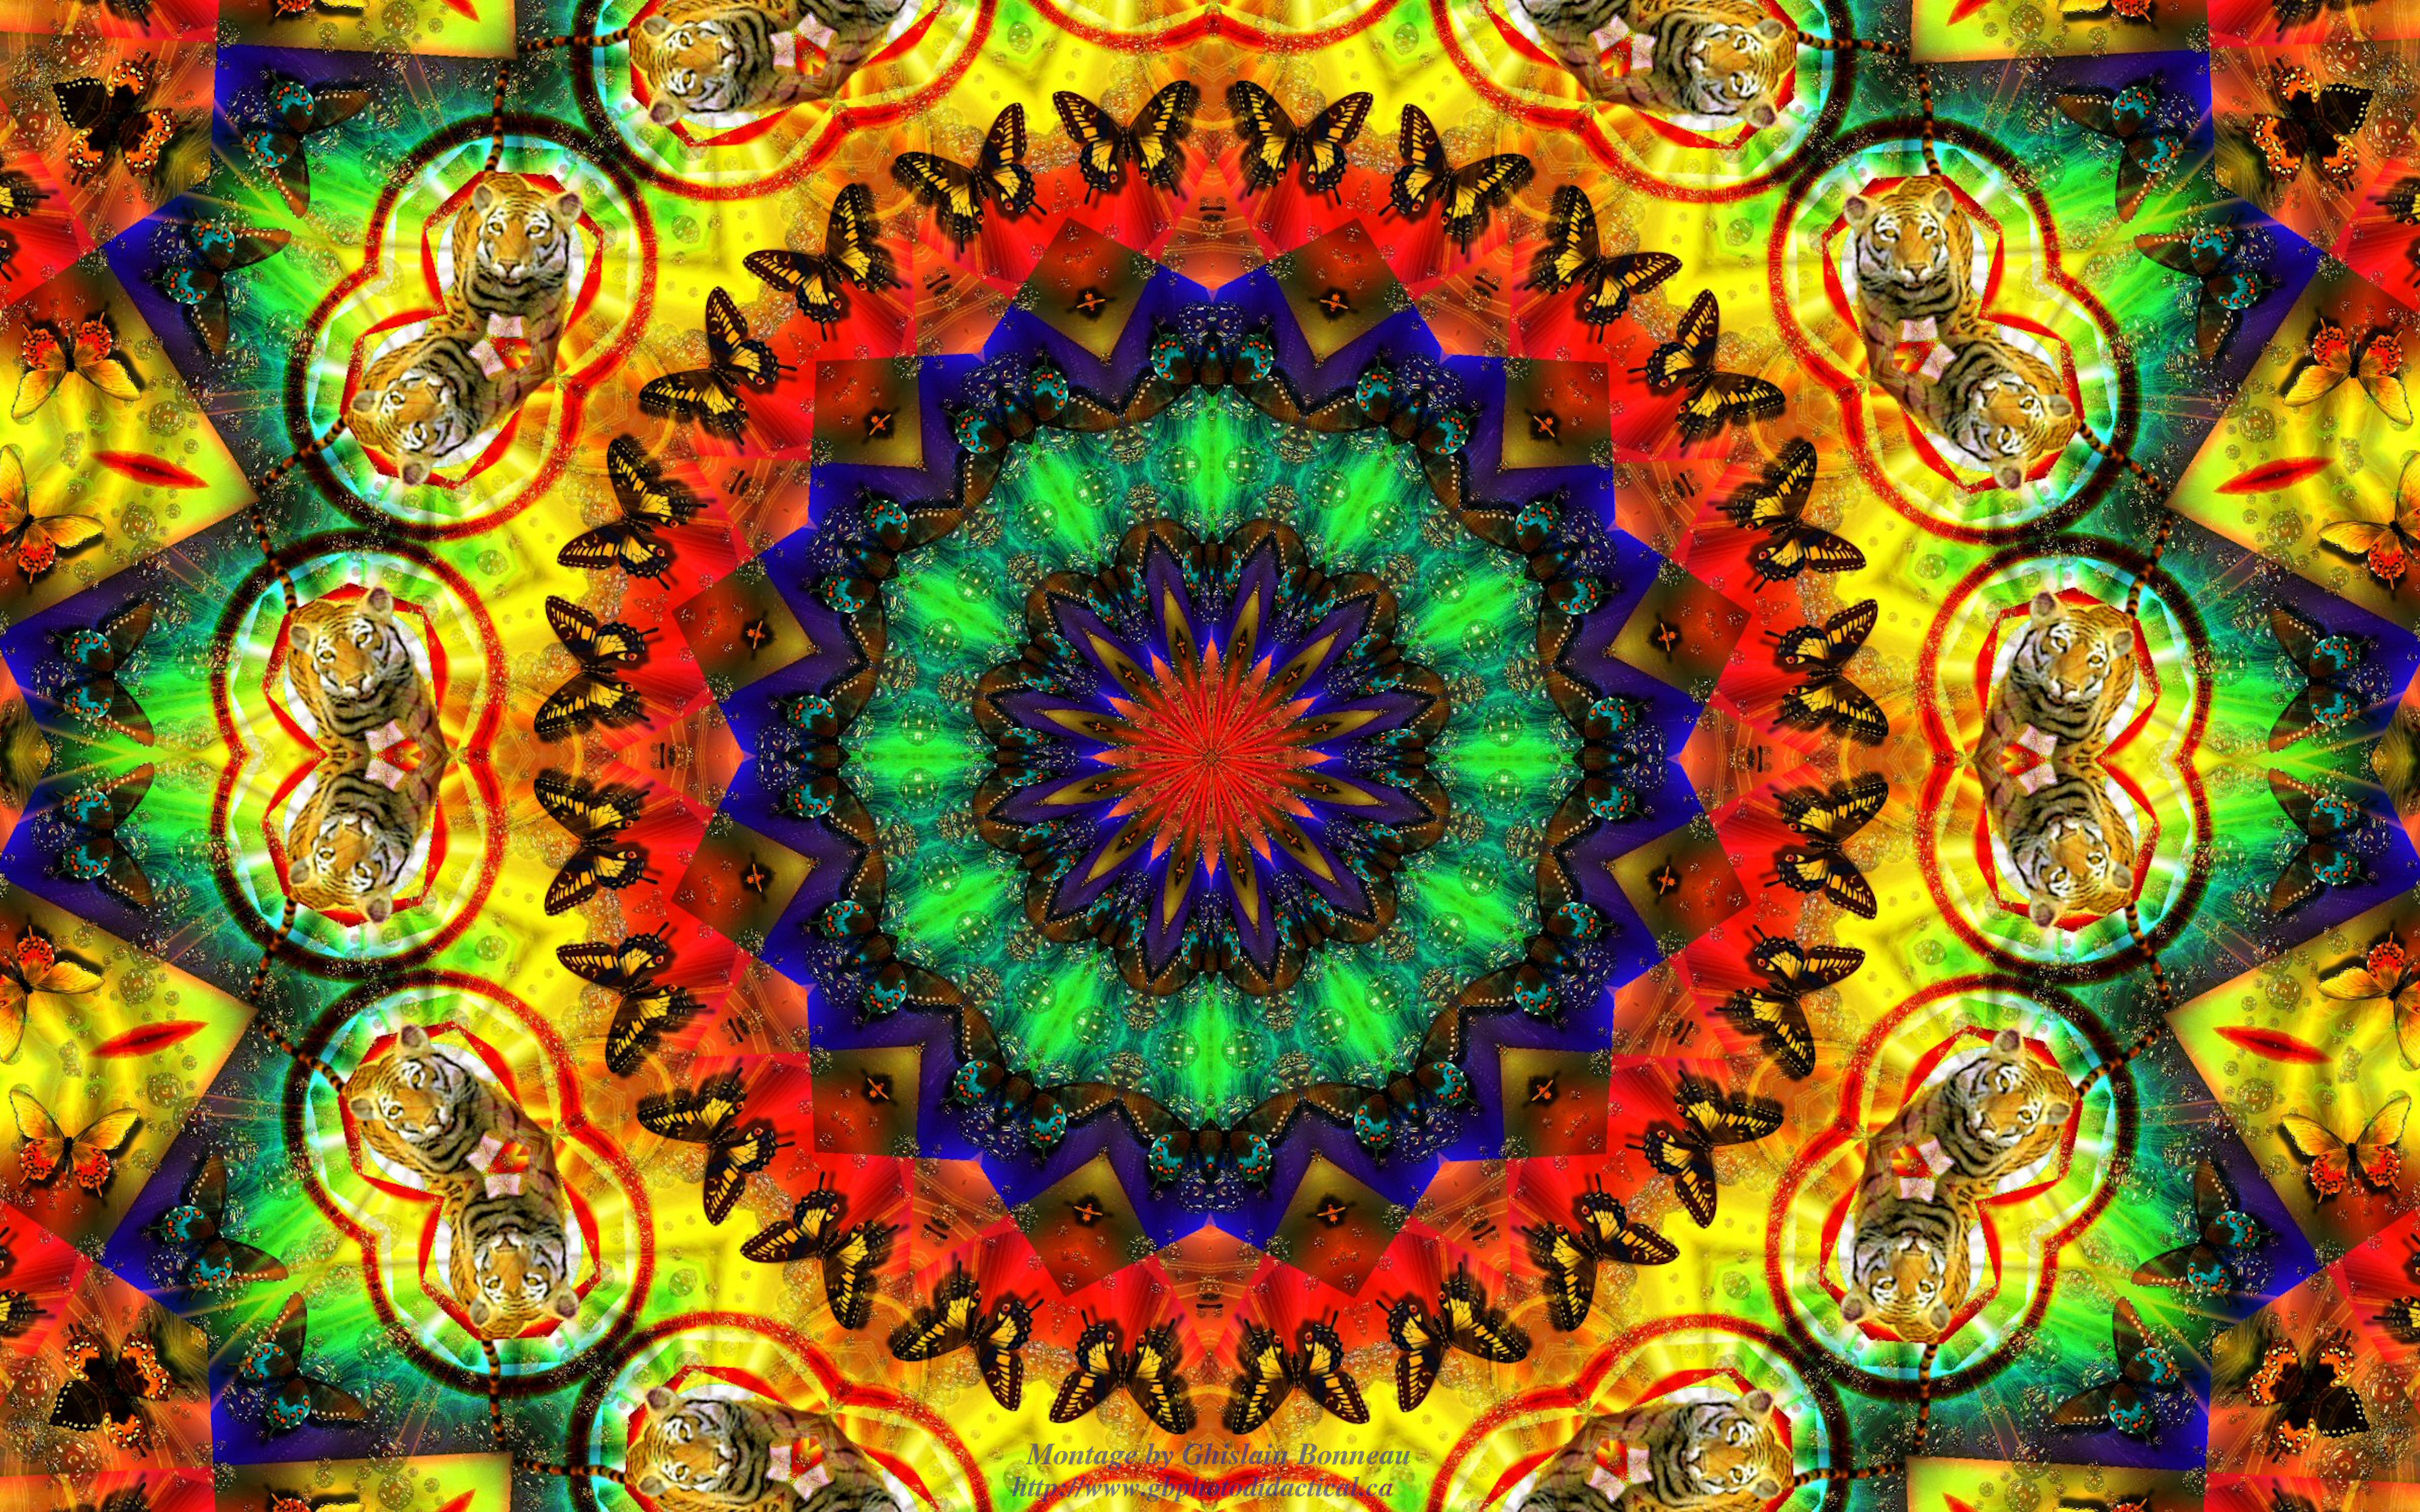 Hippie psychedelic wallpaper 4000x2500